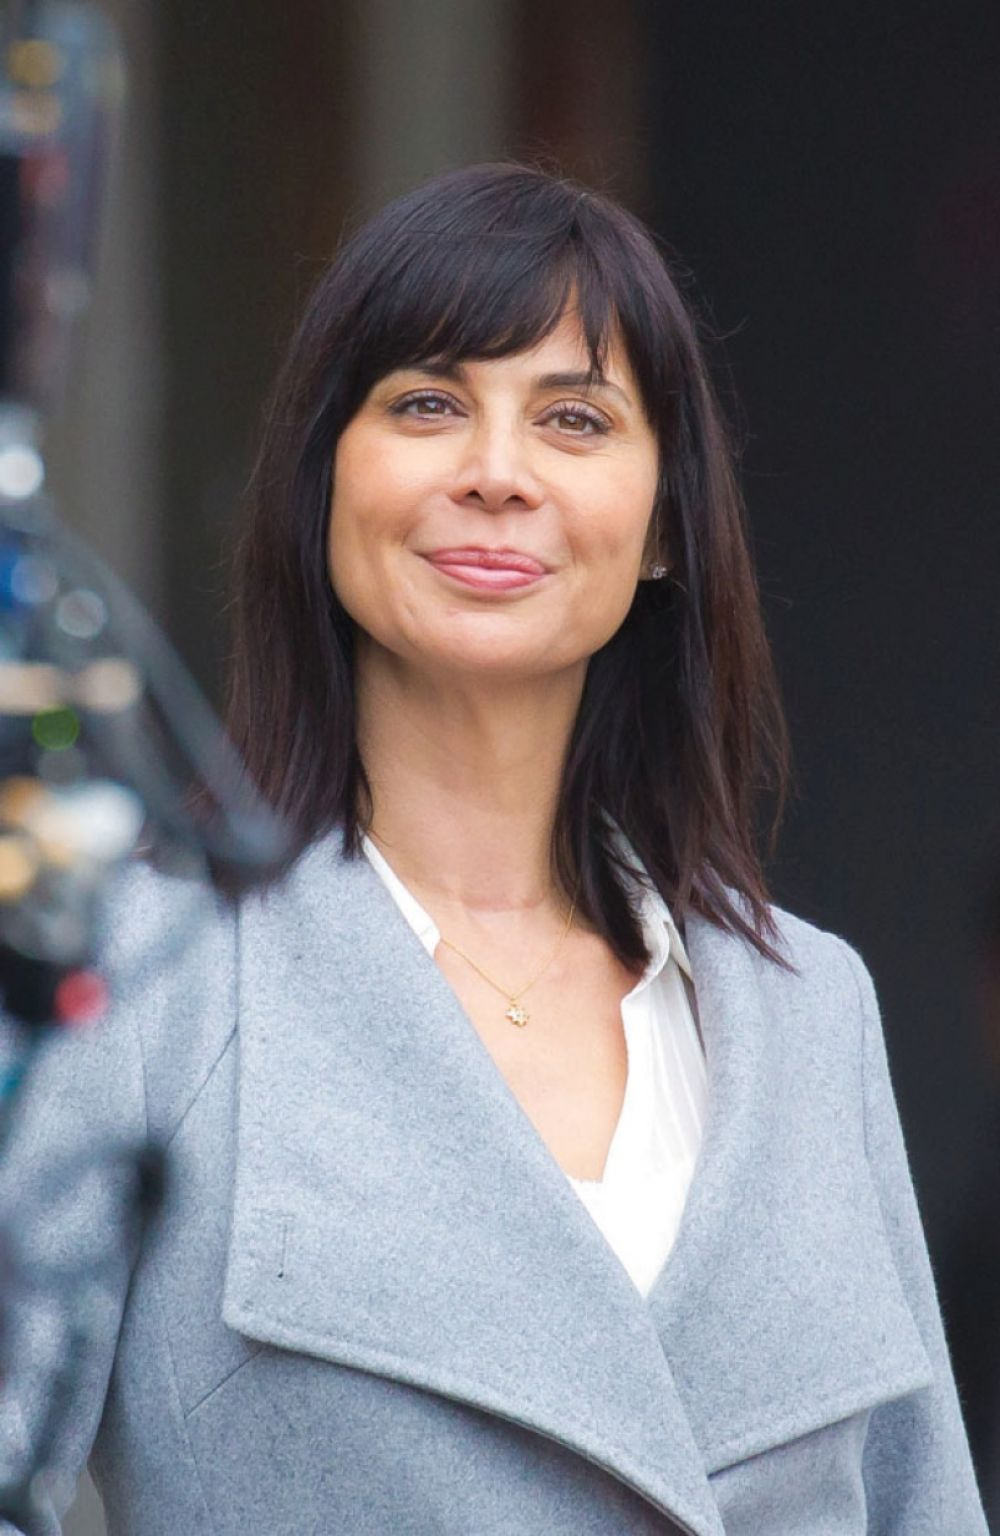 CATHERINE BELL for 12 Days, 2017 Promos